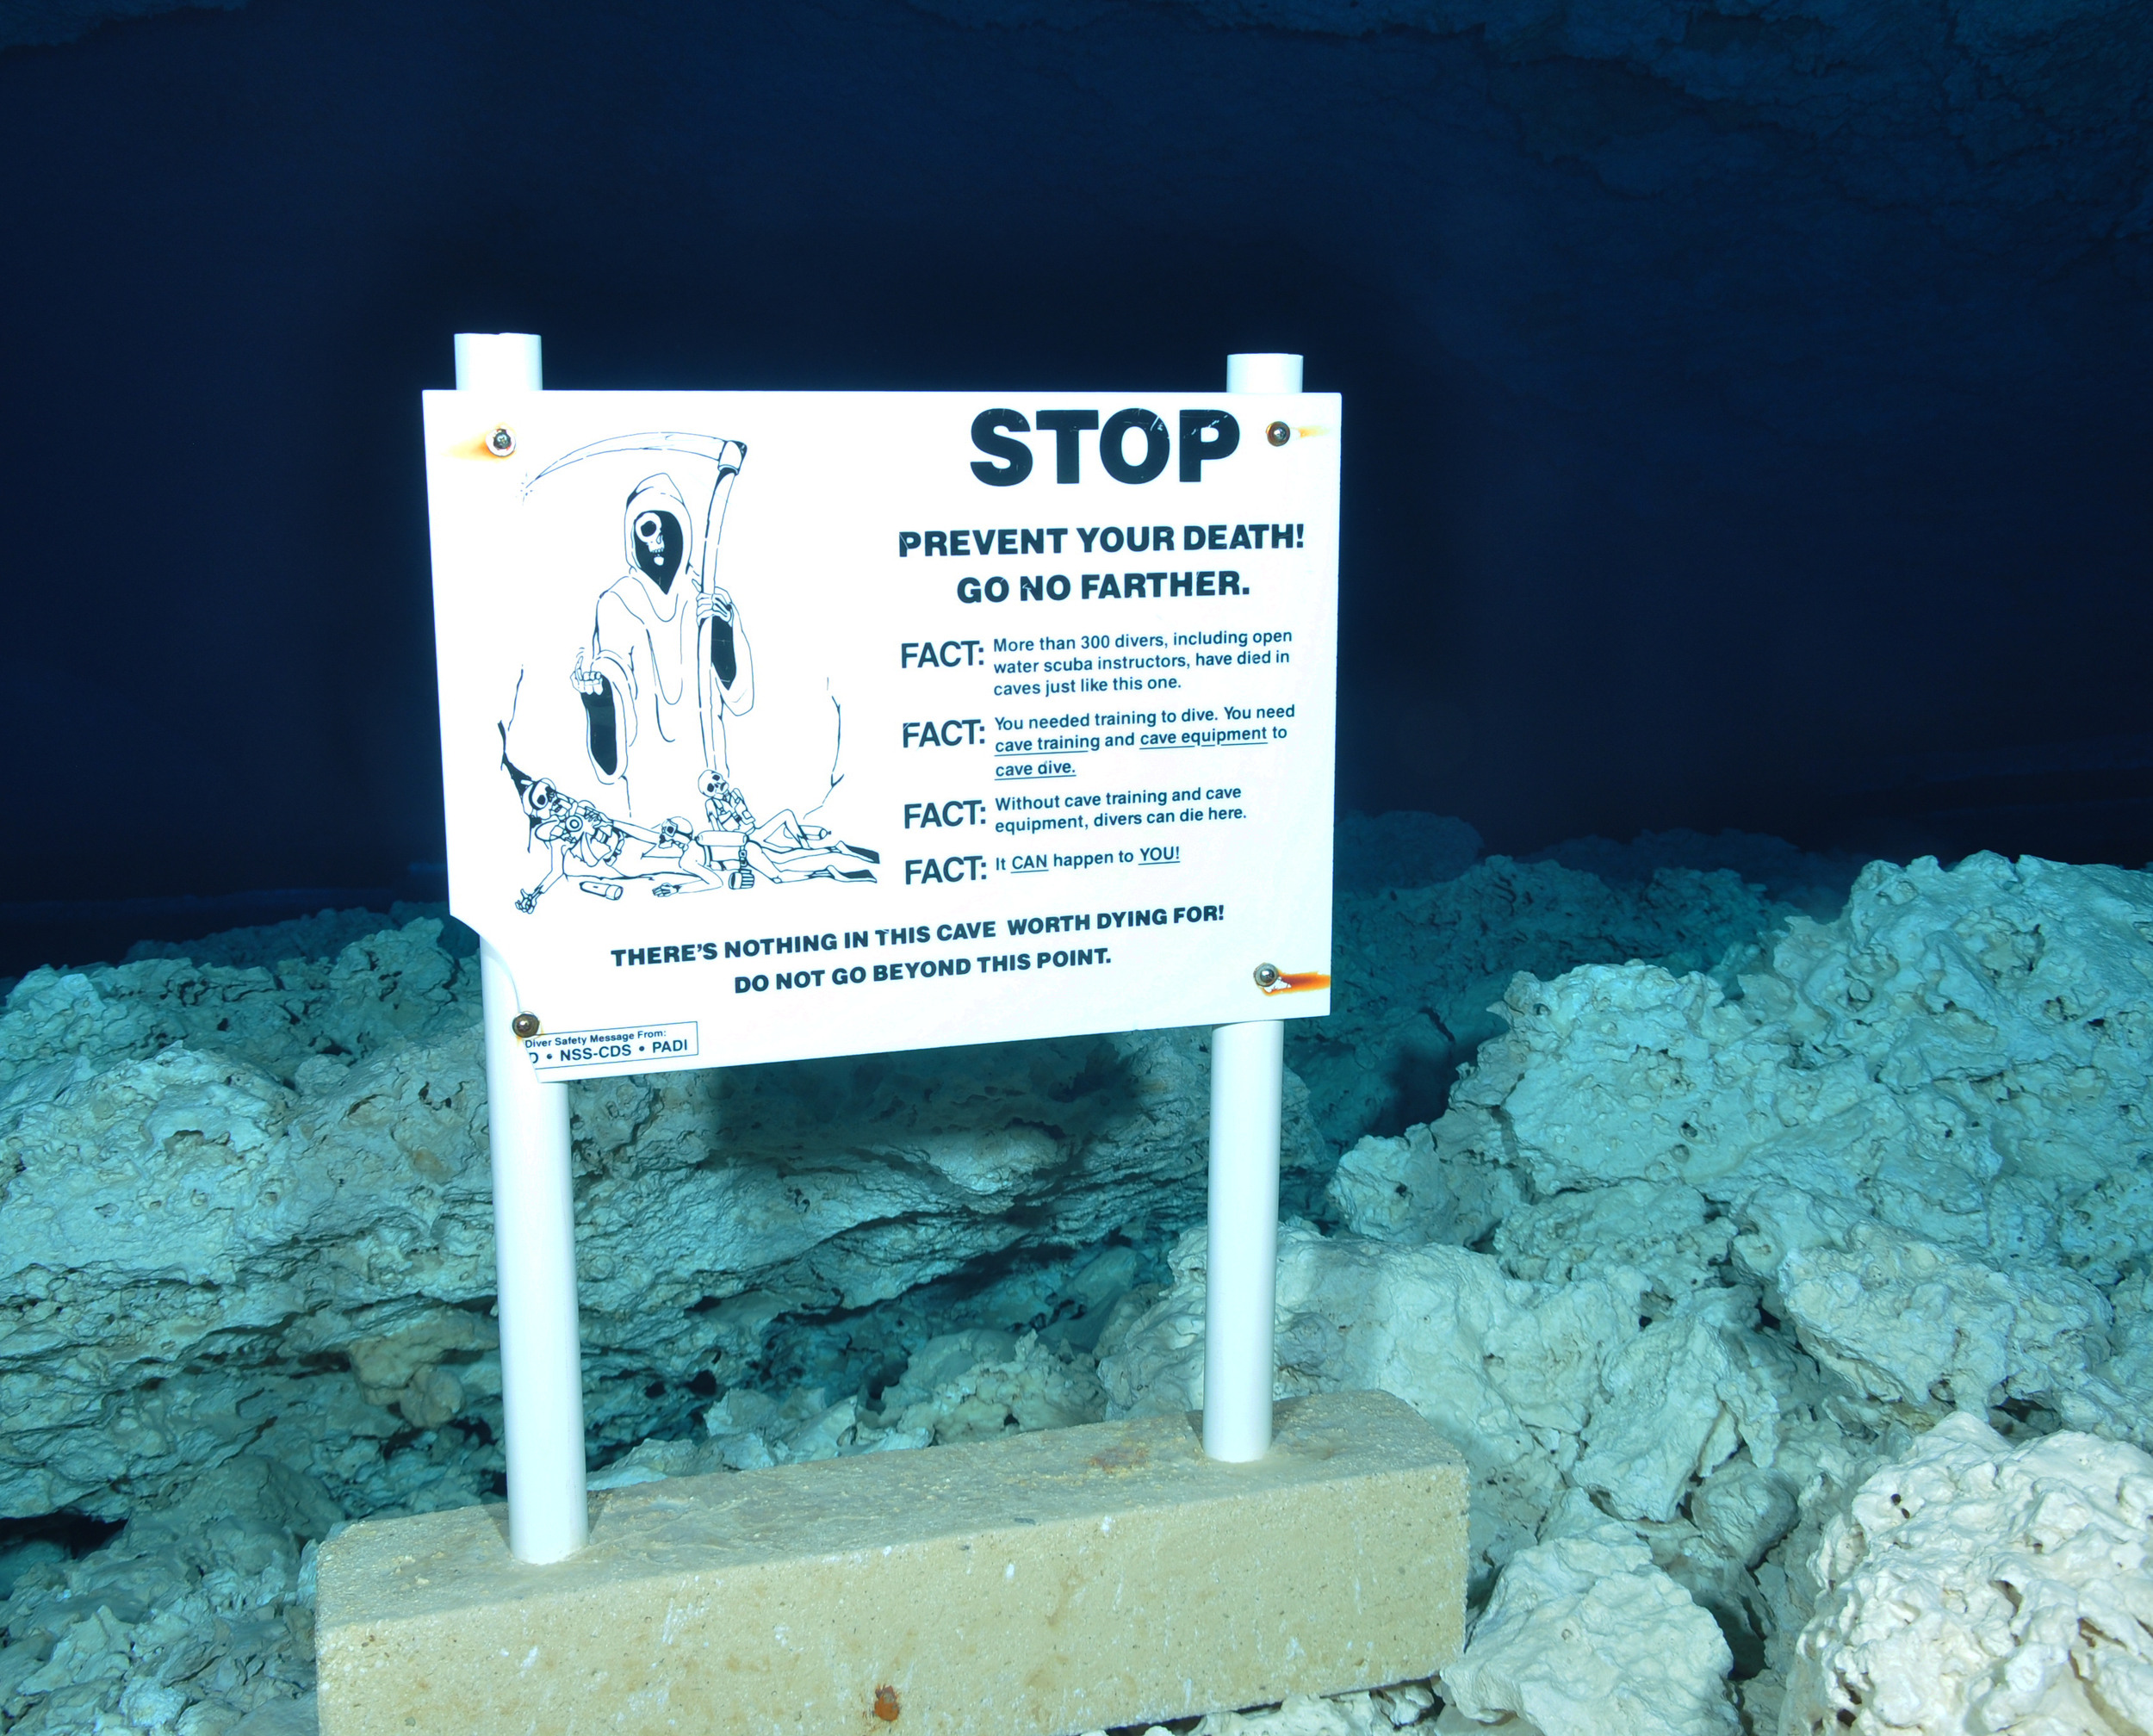 160 Mexico Cenote Diving 2012.JPG